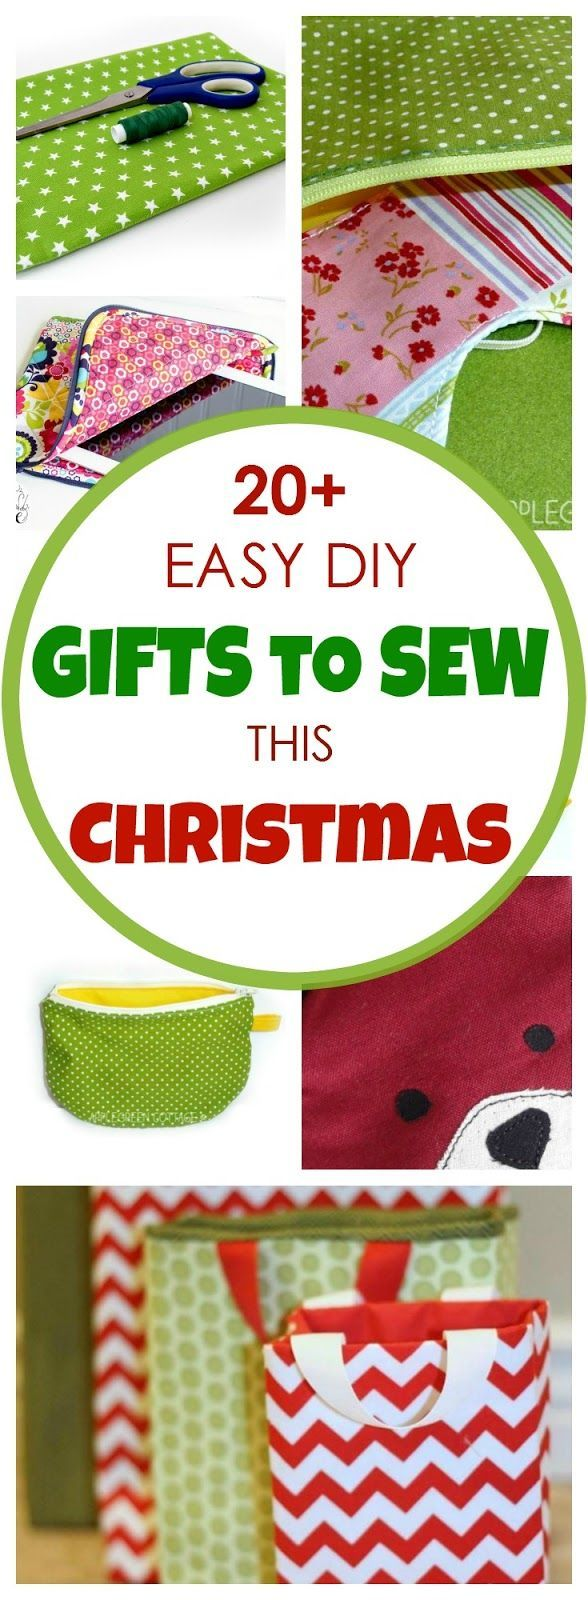 20 easy diy gifts to sew this christmas free pattern 20 easy diy gifts to sew this christmas jeuxipadfo Choice Image